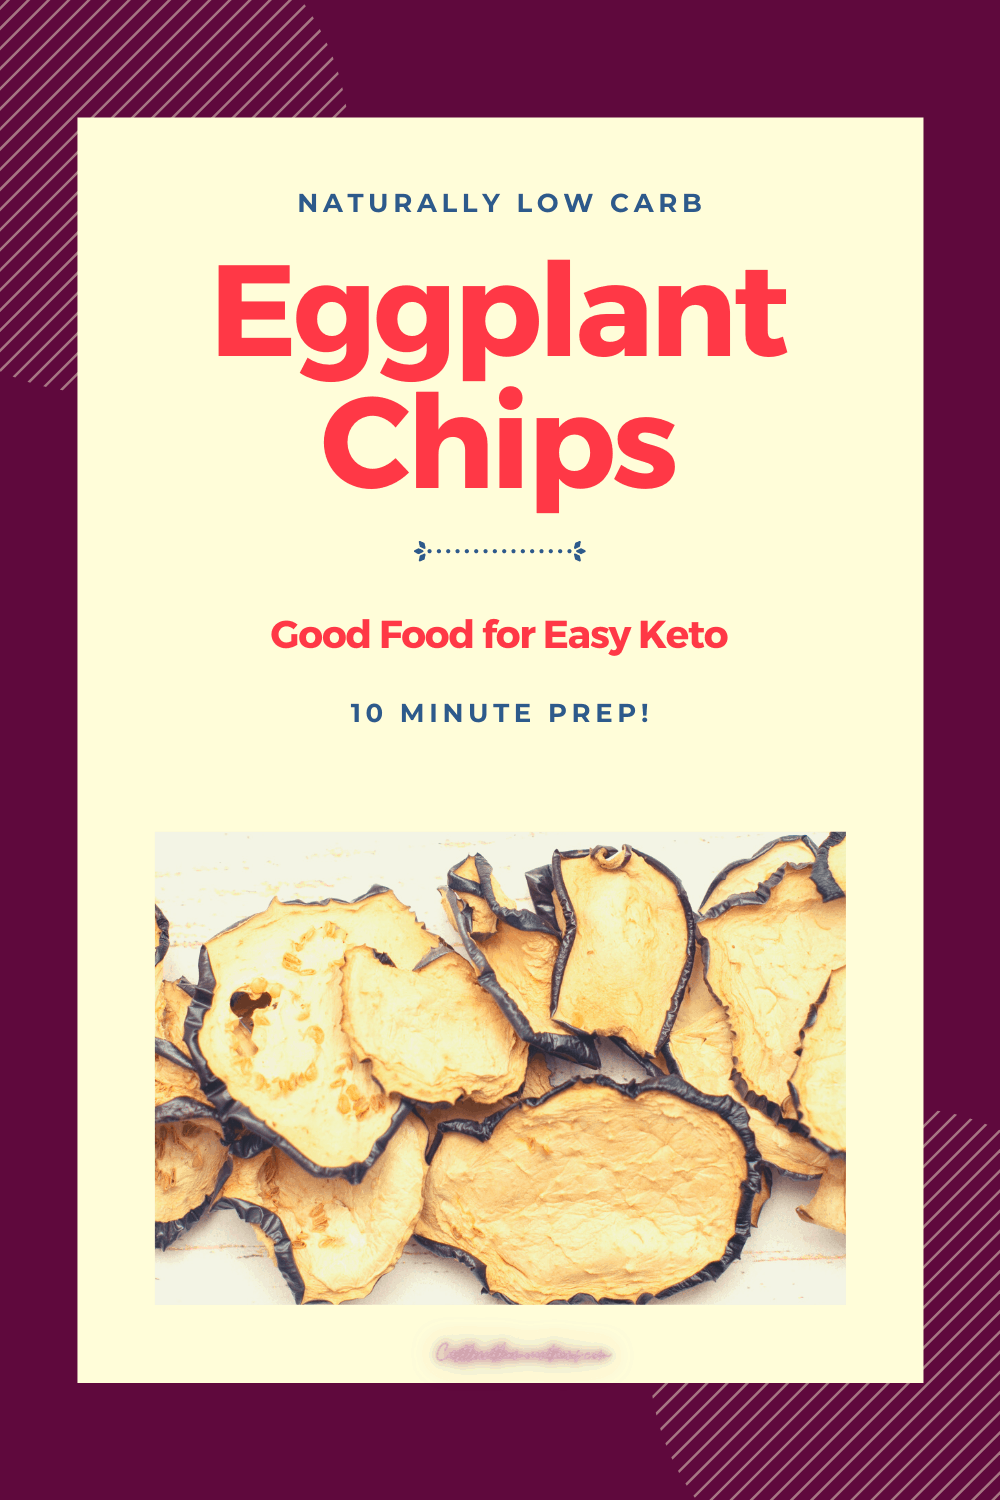 Spicy Eggplant Chips